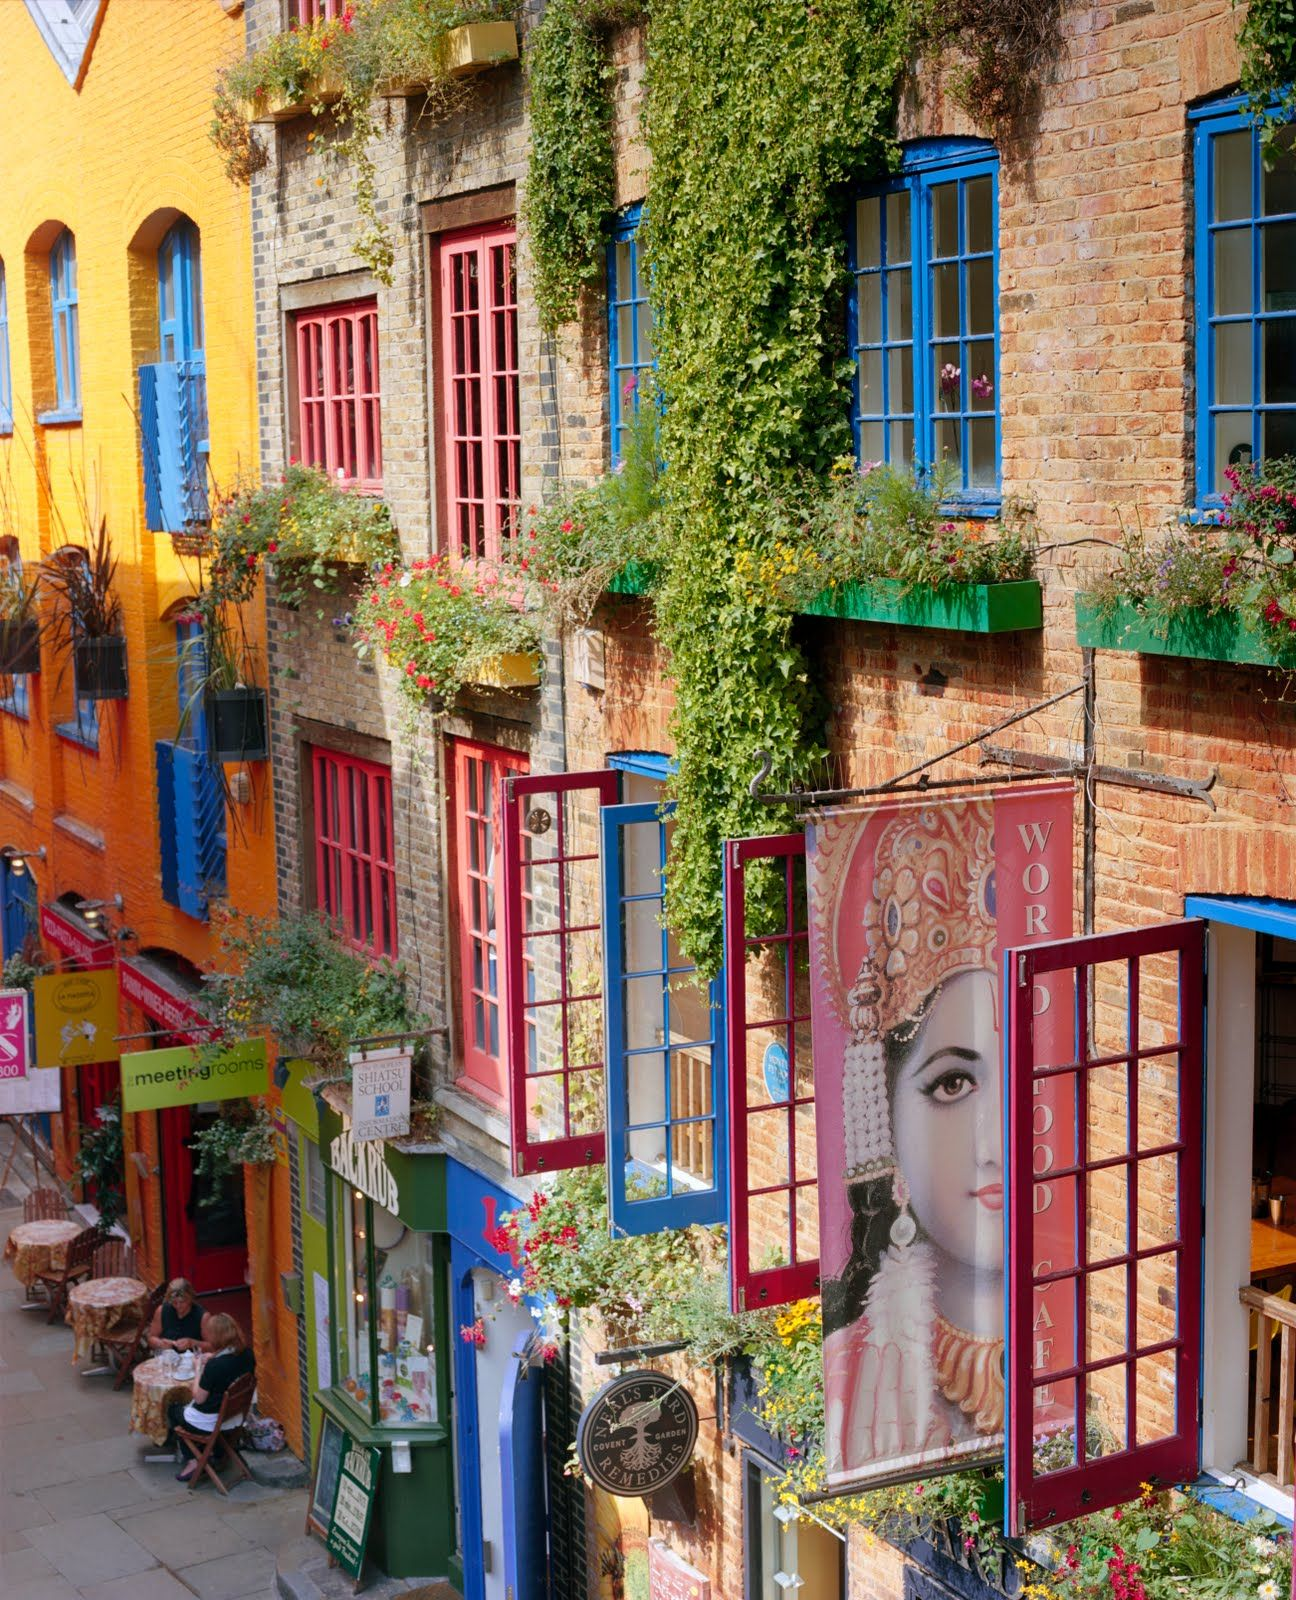 London's Seven Dials neighborhood. Once one of the worst ...